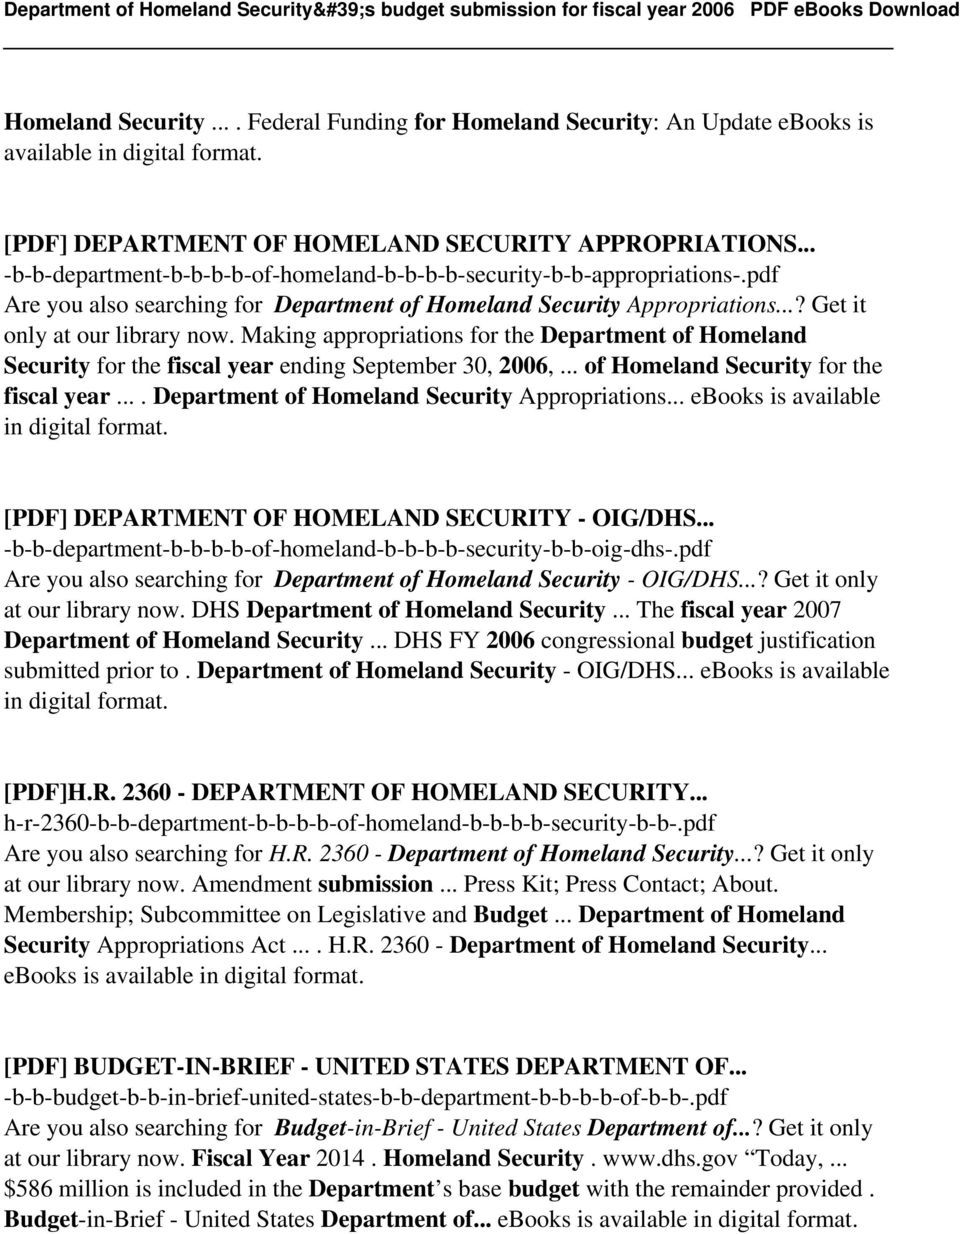 Making appropriations for the Department of Homeland Security for the fiscal year ending September 30, 2006,... of Homeland Security for the fiscal year.... Department of Homeland Security Appropriations.